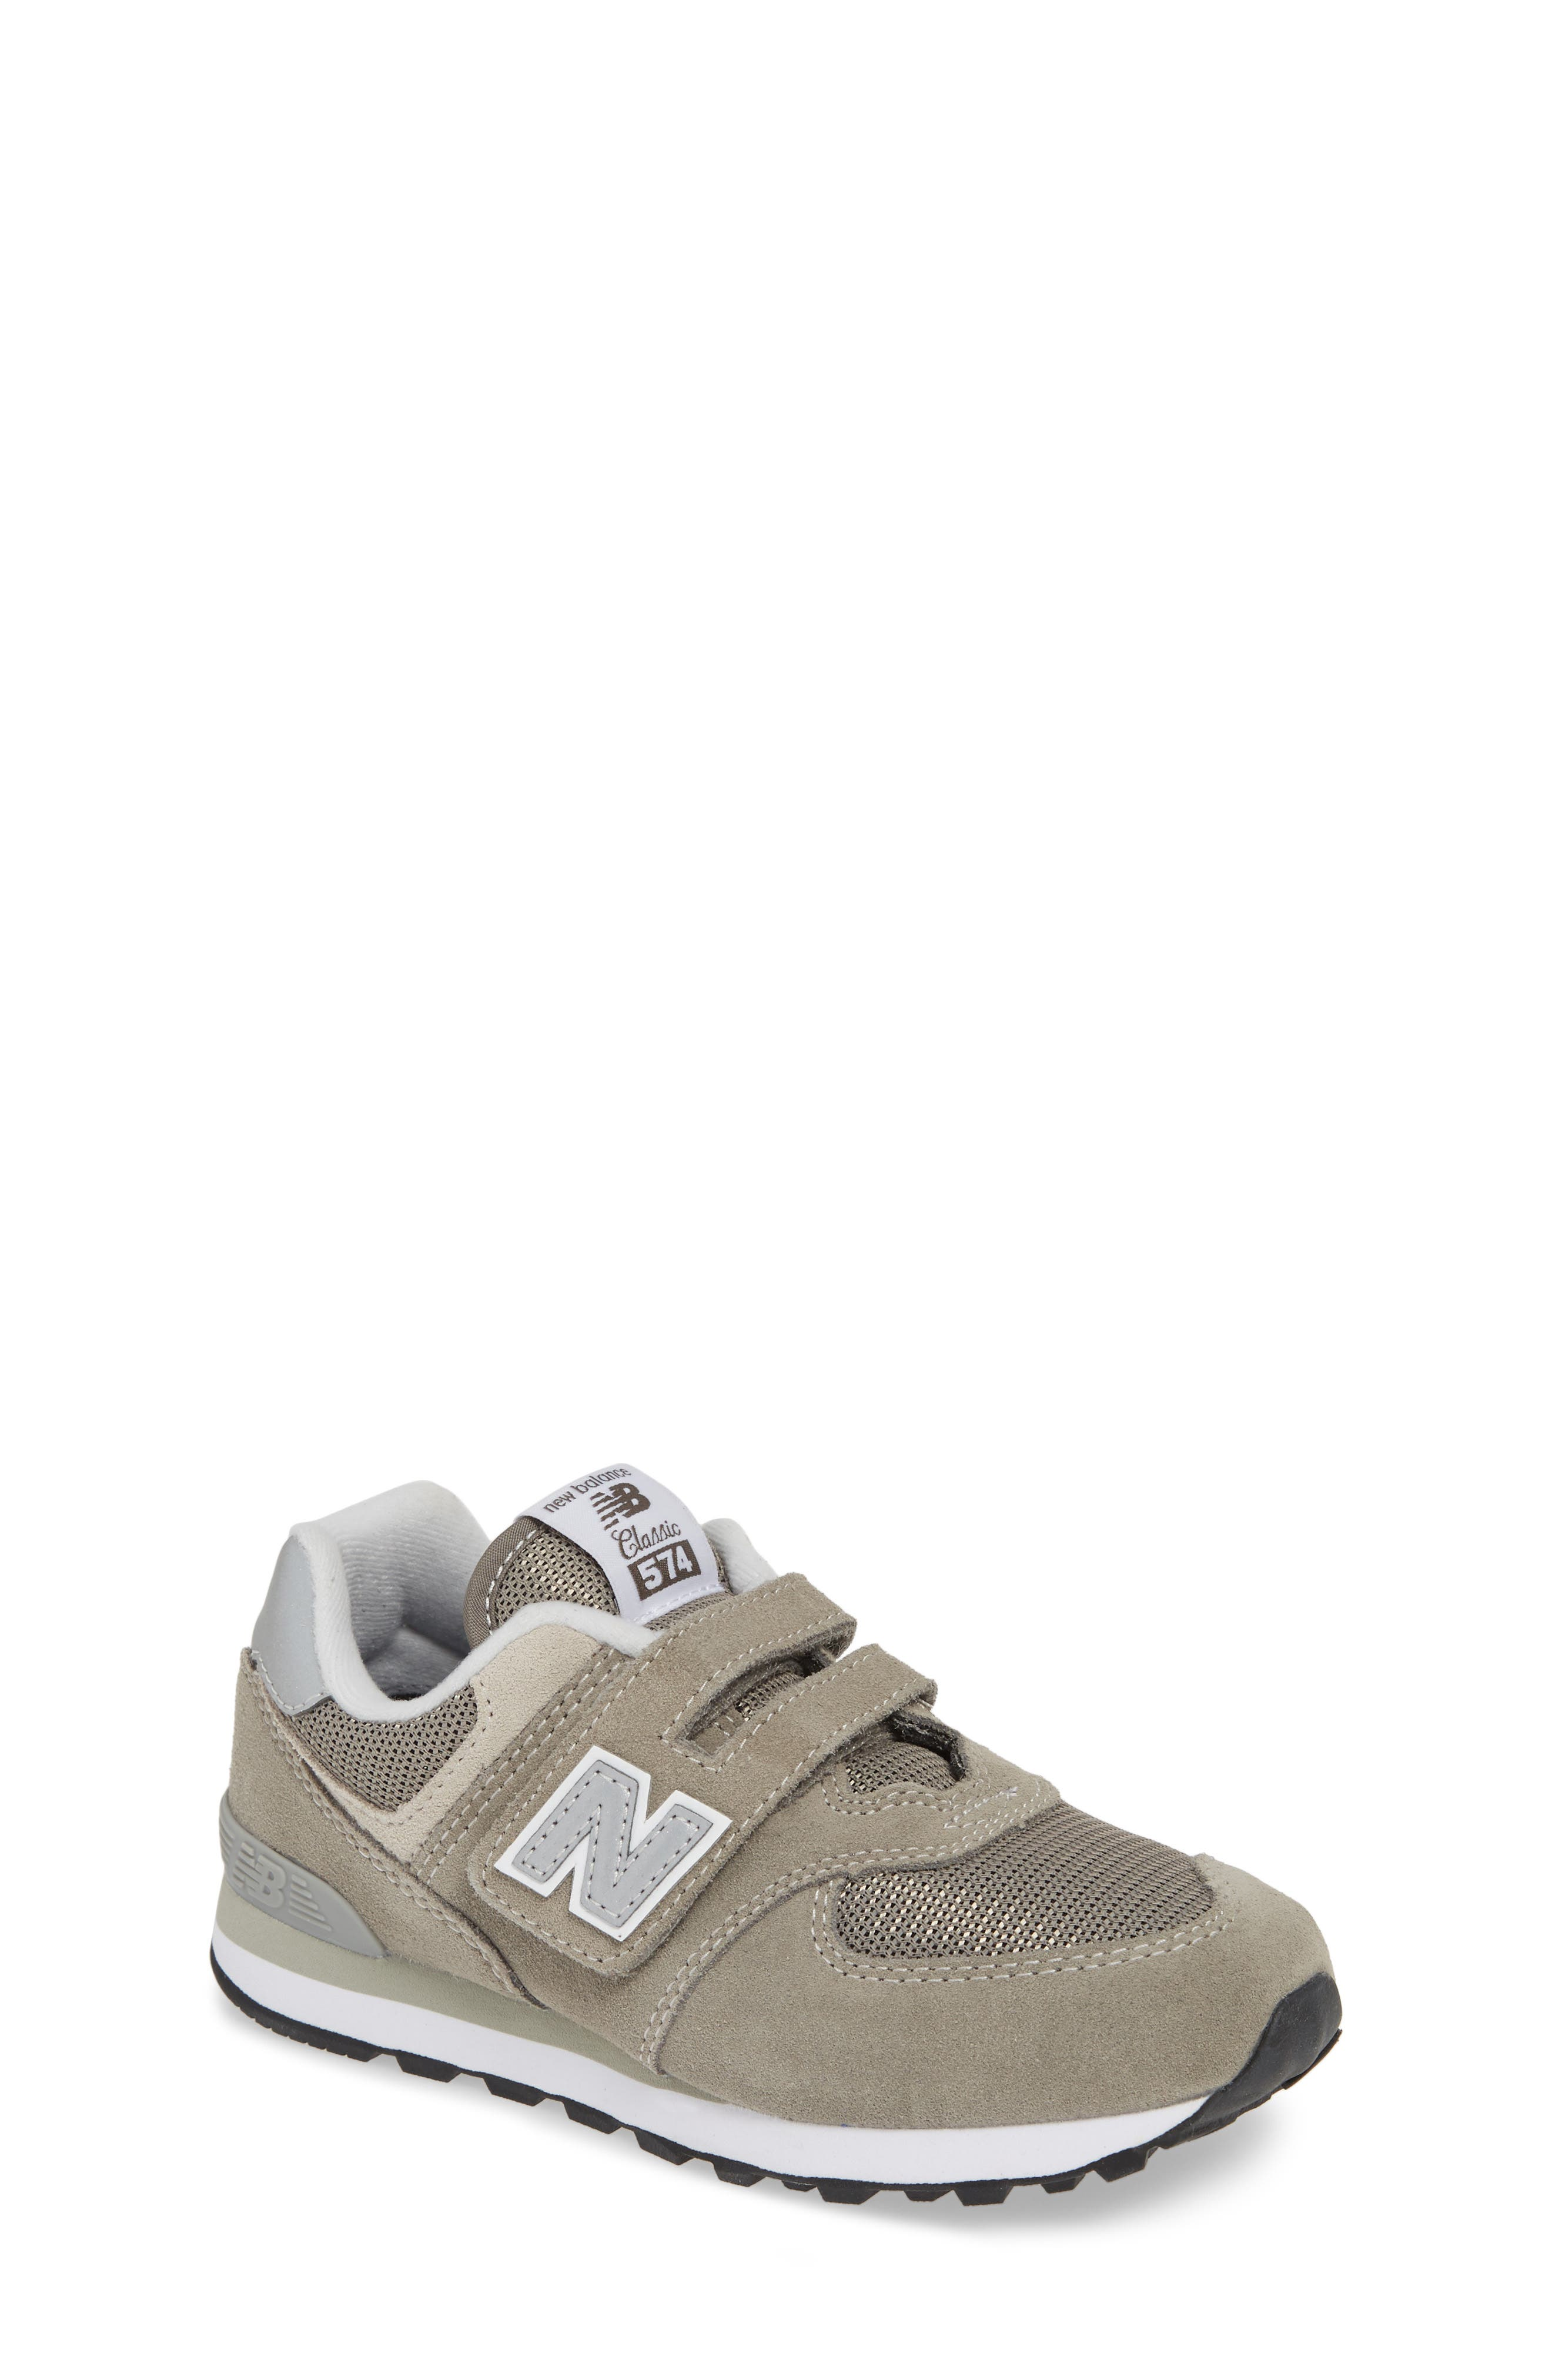 NEW BALANCE, 574 Retro Surf Sneaker, Main thumbnail 1, color, GREY